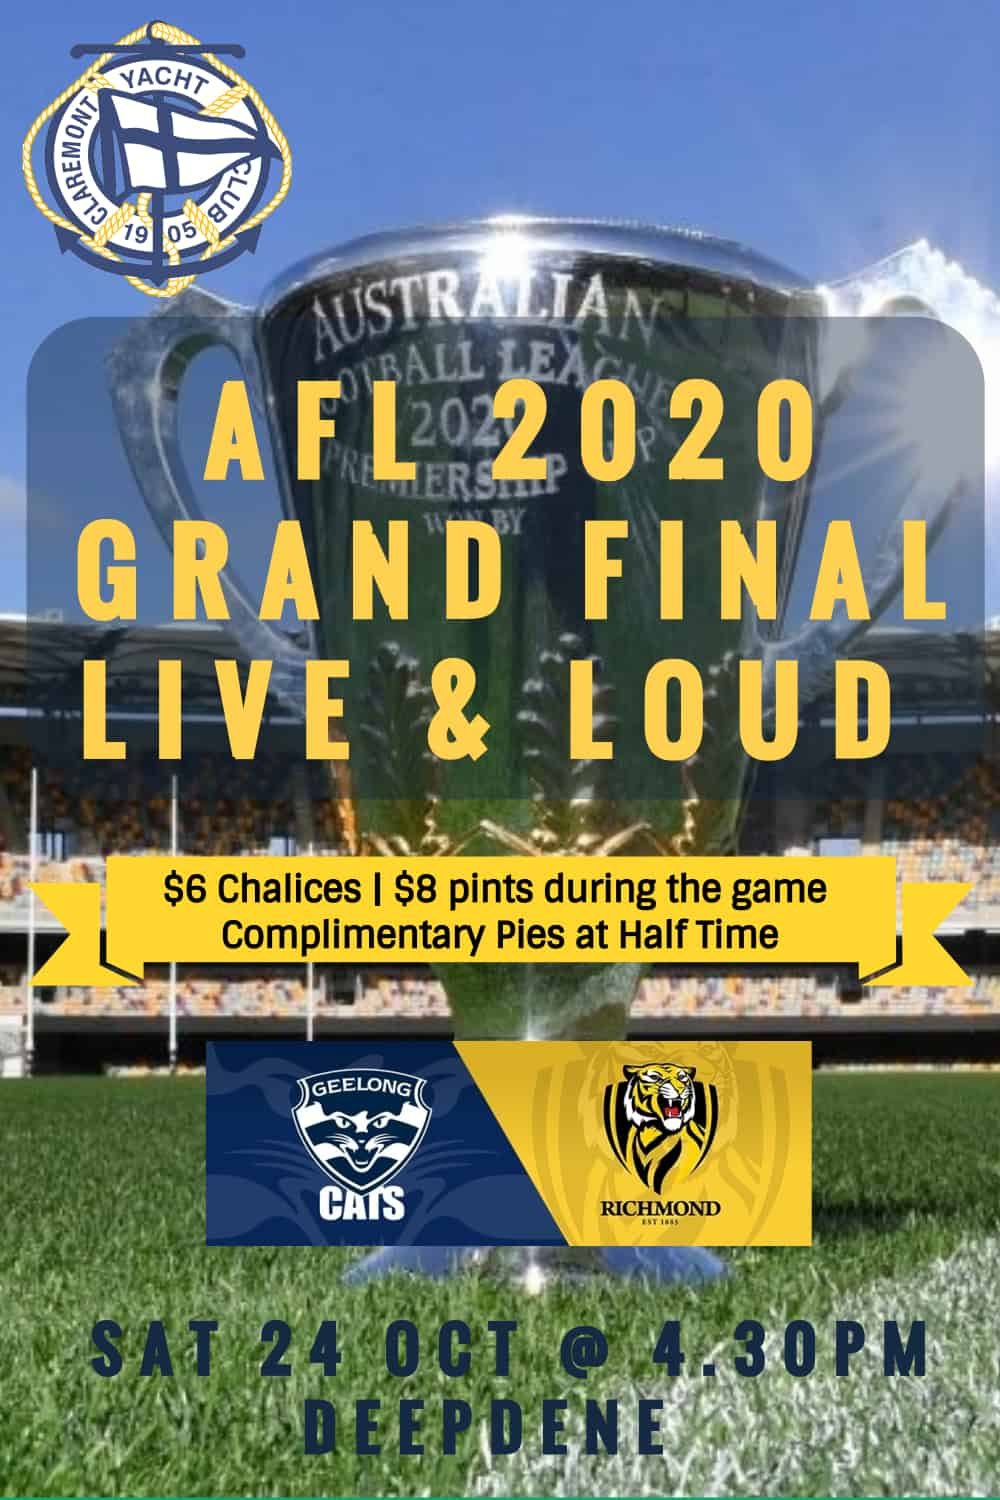 Poster for Claremont Yacht CLub AFL Grand Final even October 2020